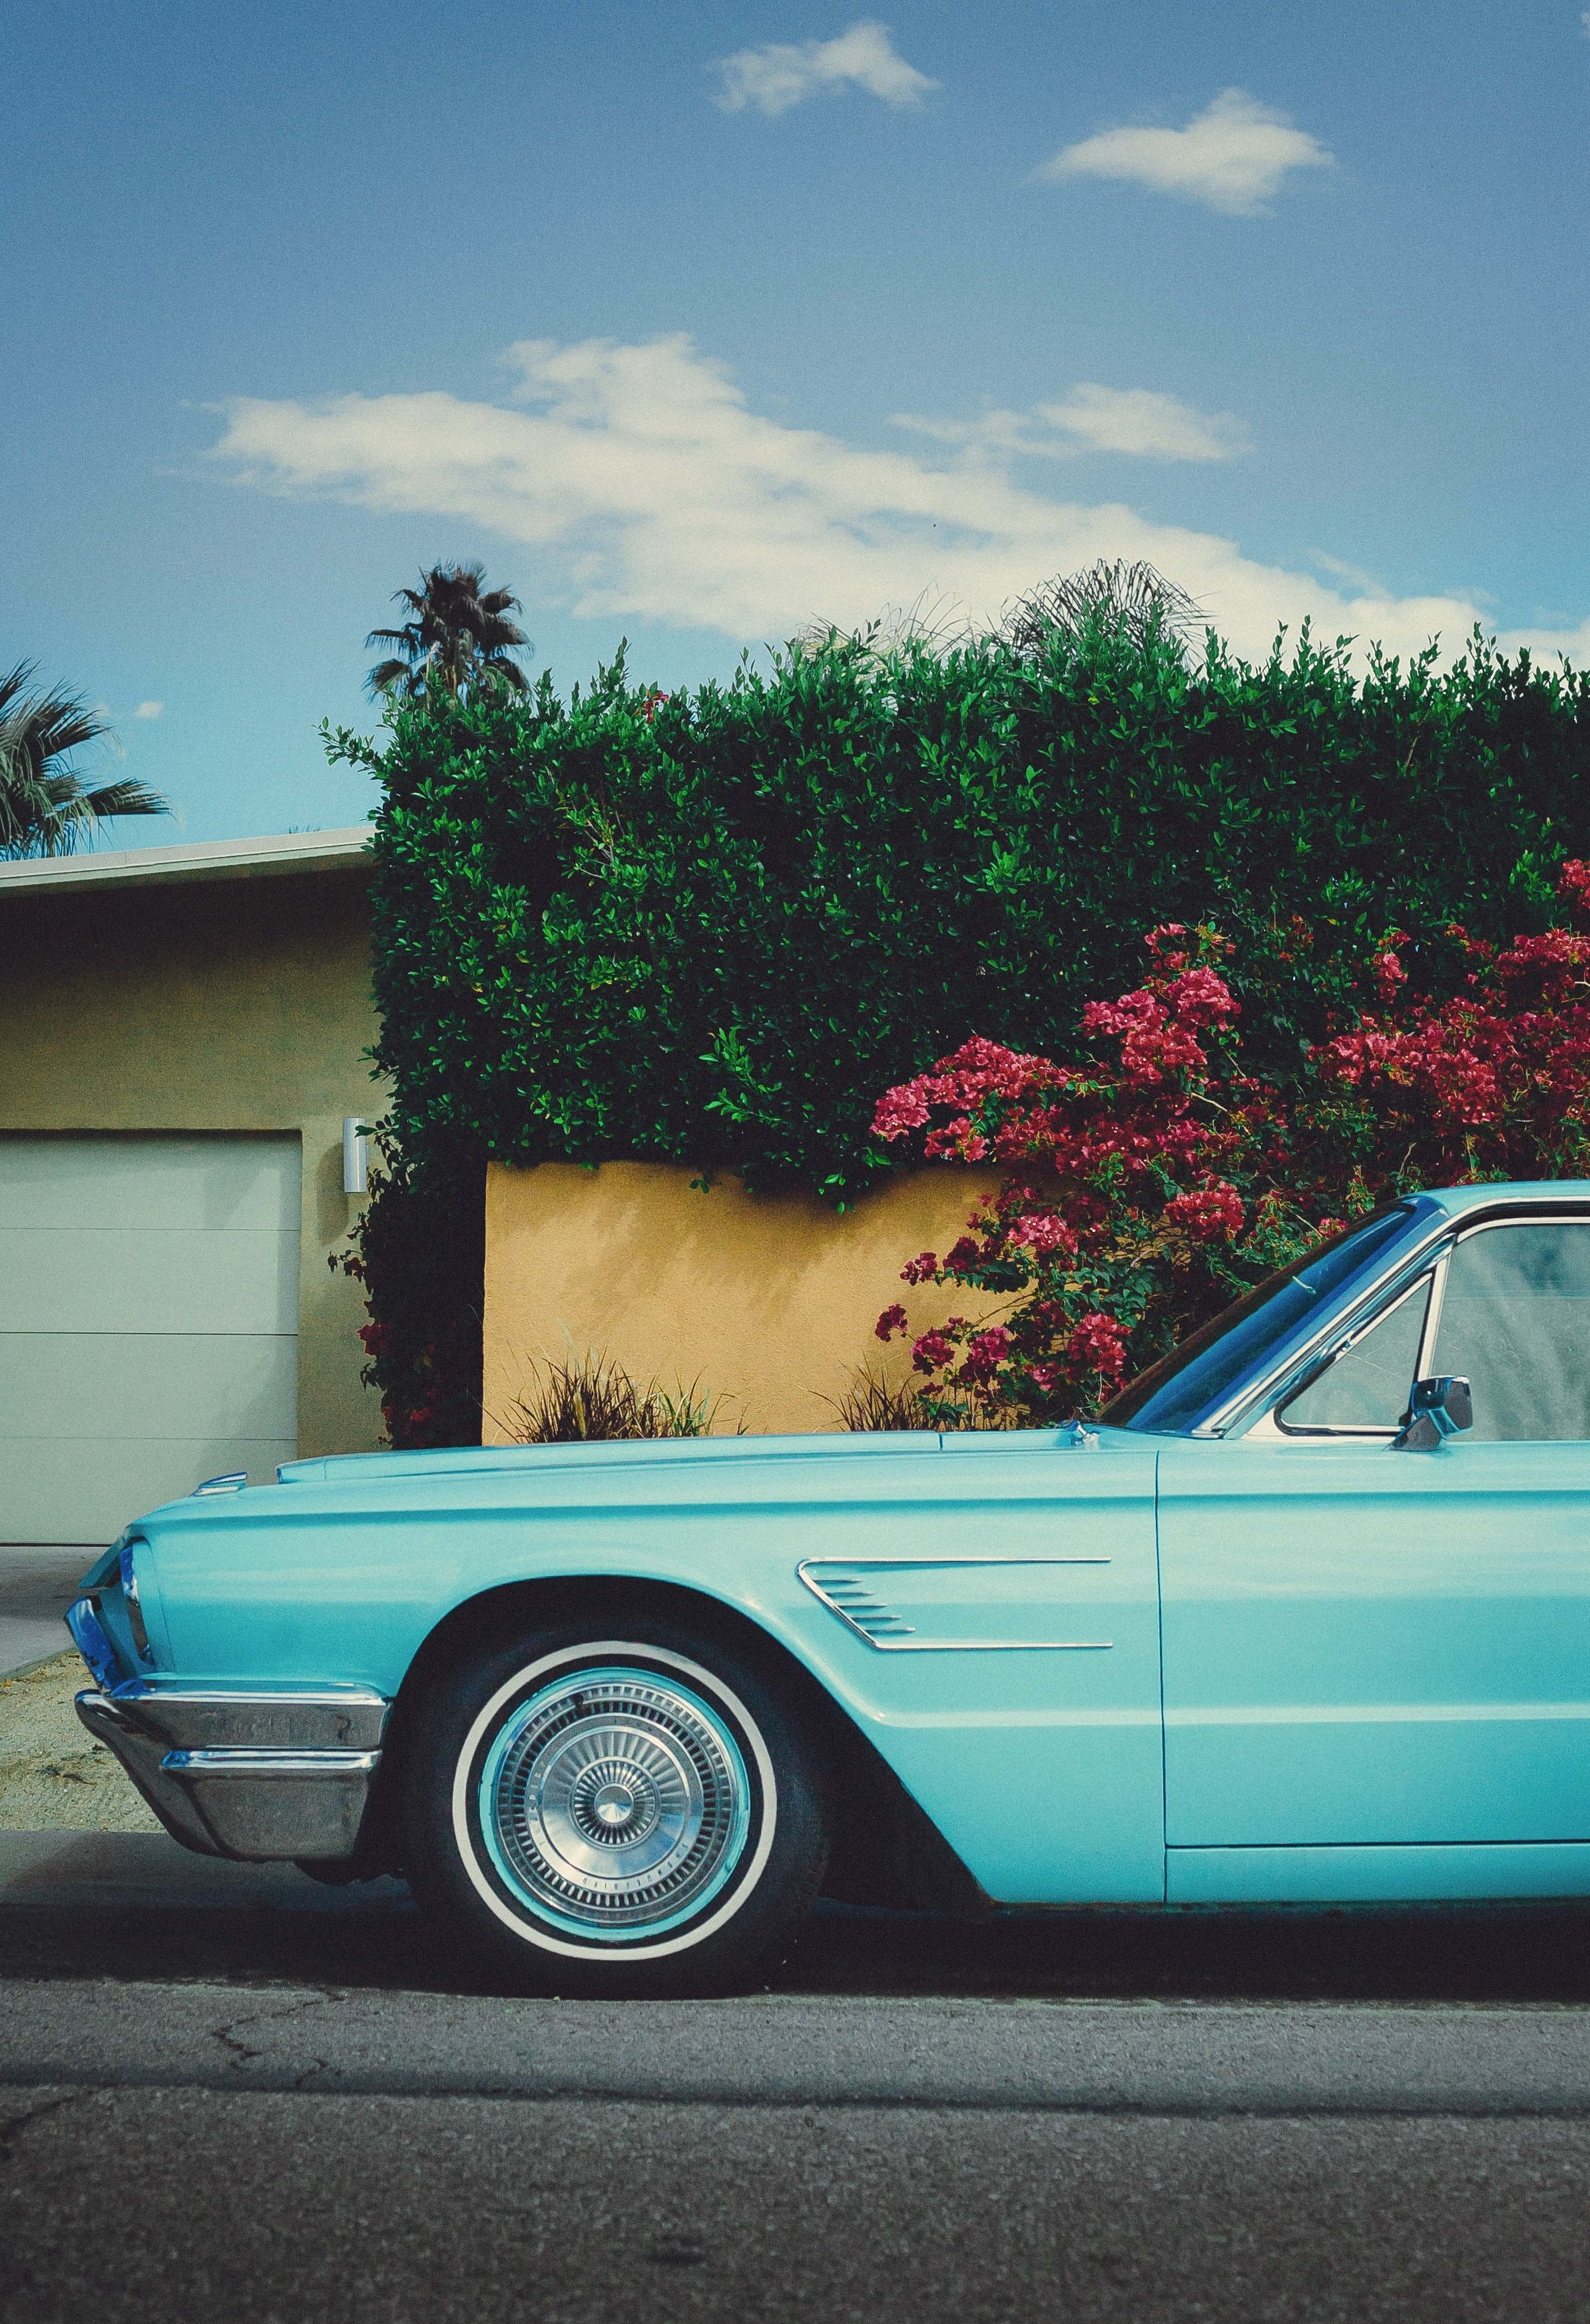 123822 Screensavers and Wallpapers Retro for phone. Download Cars, Car, Machine, Retro, Vintage, Street pictures for free